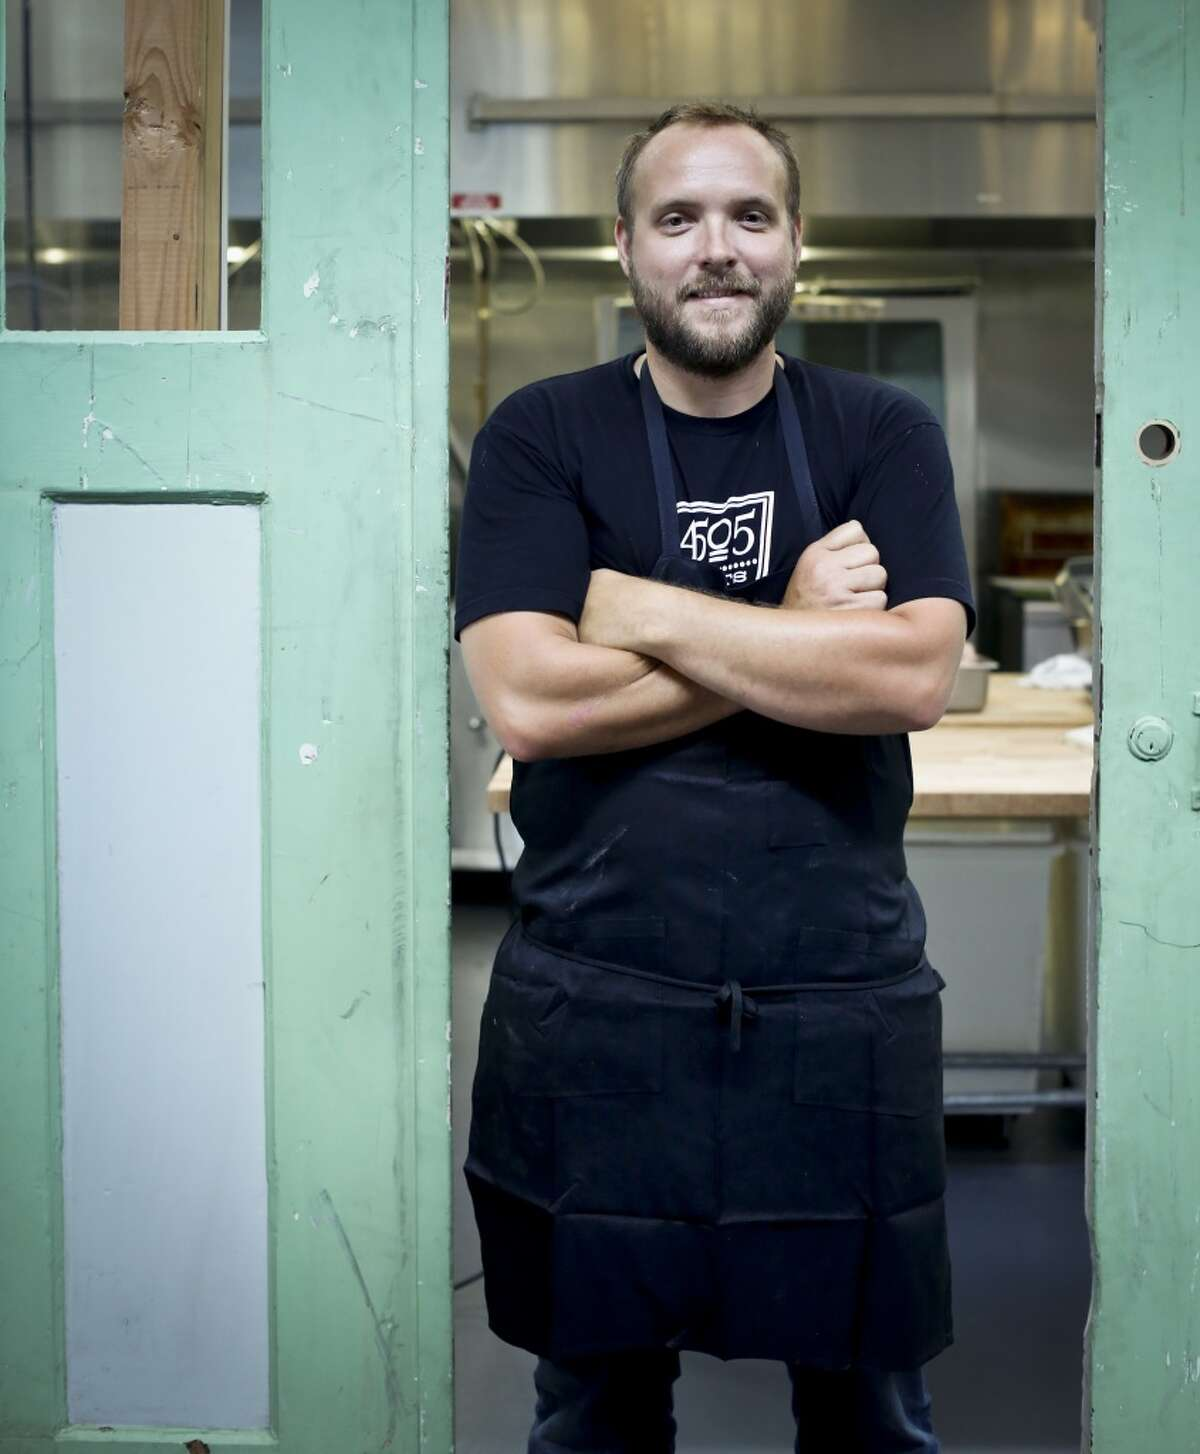 Ryan Farr of 4505 Meats is seen on Tuesday, July 15, 2014 in San Francisco, Calif.